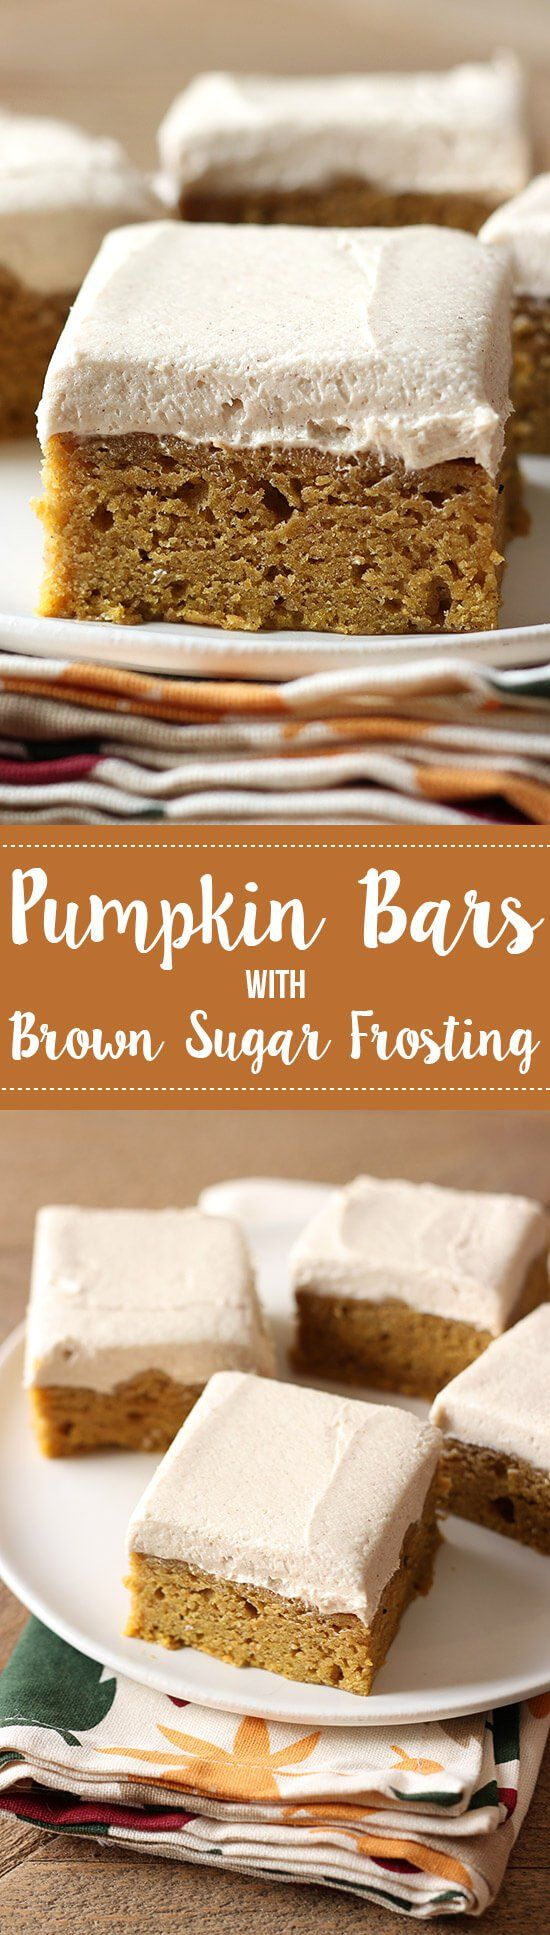 SO GOOD. Pumpkin Bars with Brown Sugar Frosting is the perfect fall crowd pleasing treat! Spiced thick  soft pumpkin bars and a thick layer of brown sugar frosting.